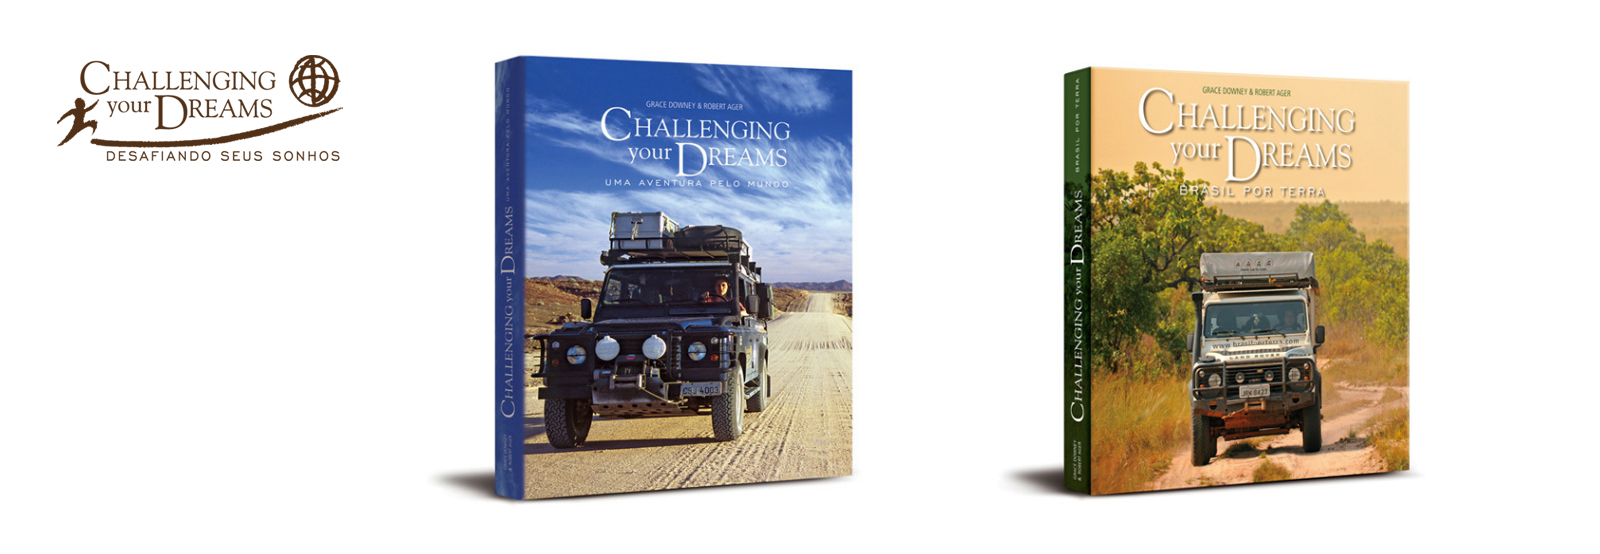 livros do Challenging Your Dreams